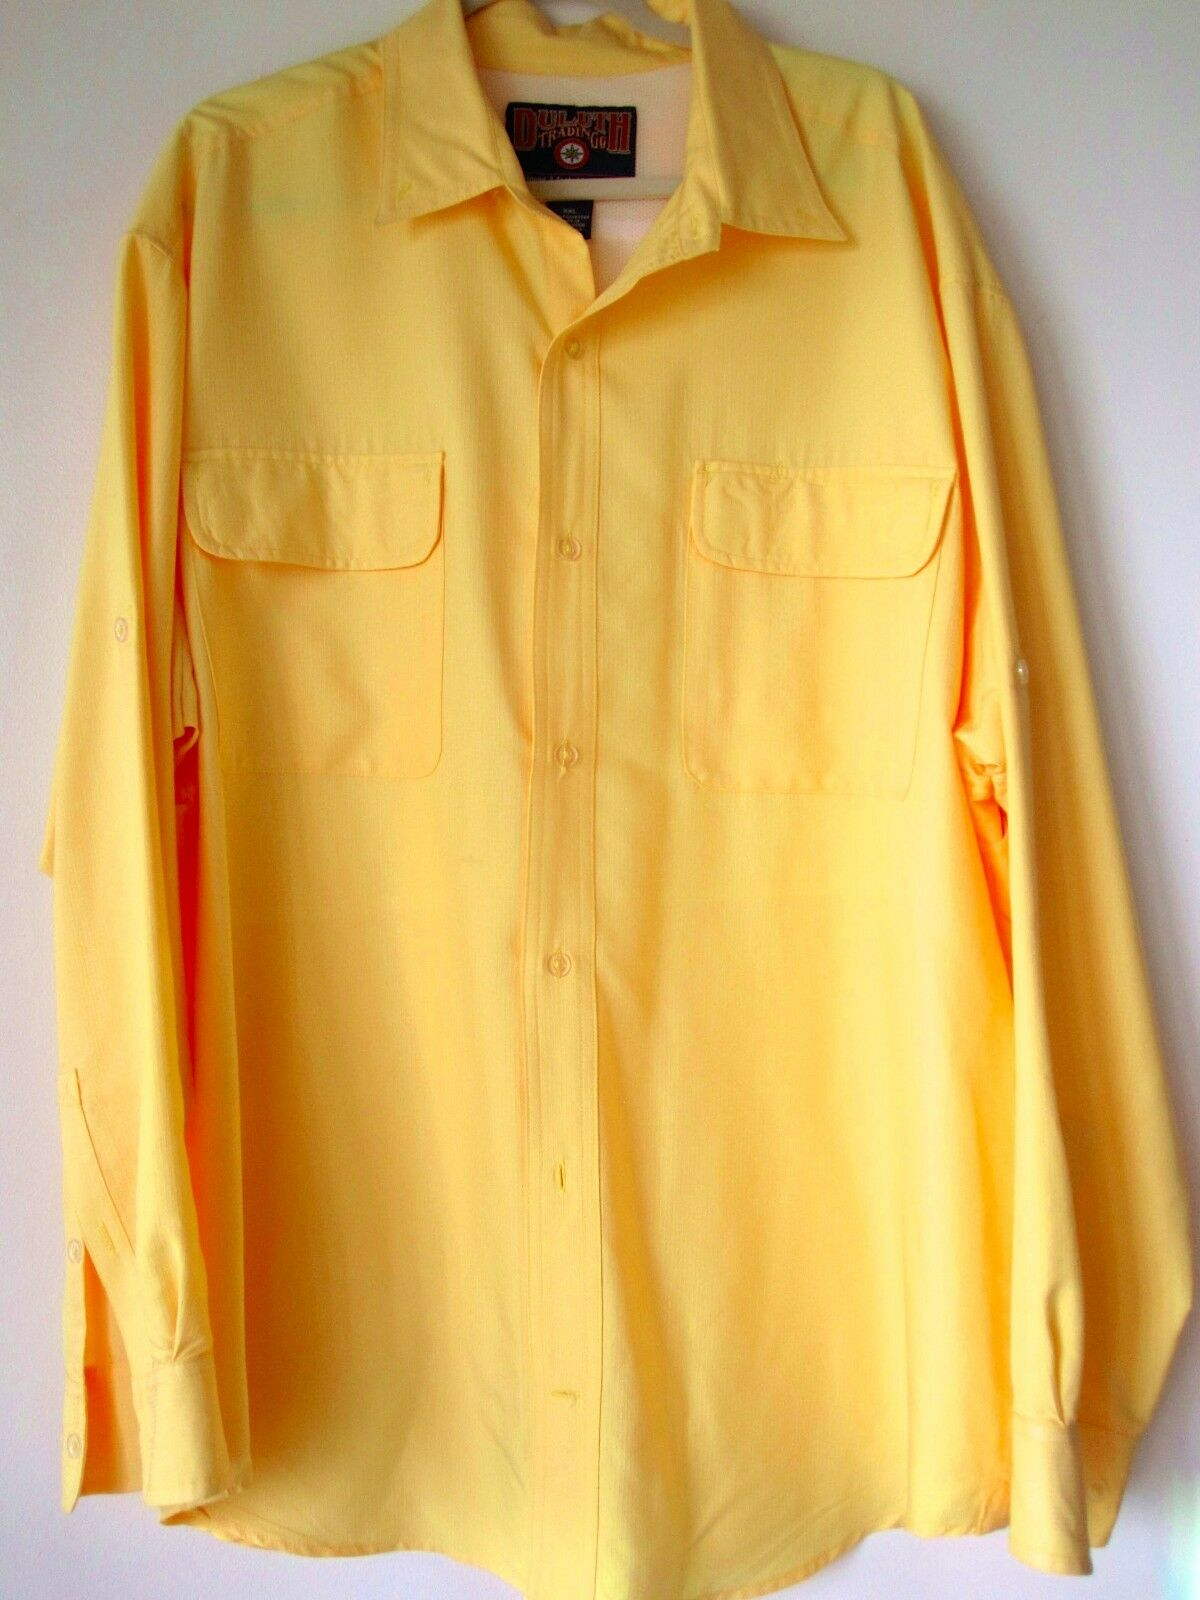 Duluth Shirt 2XL Yellow Work Shirt Long Sleeve Buttons Down XXL Polyester Mens